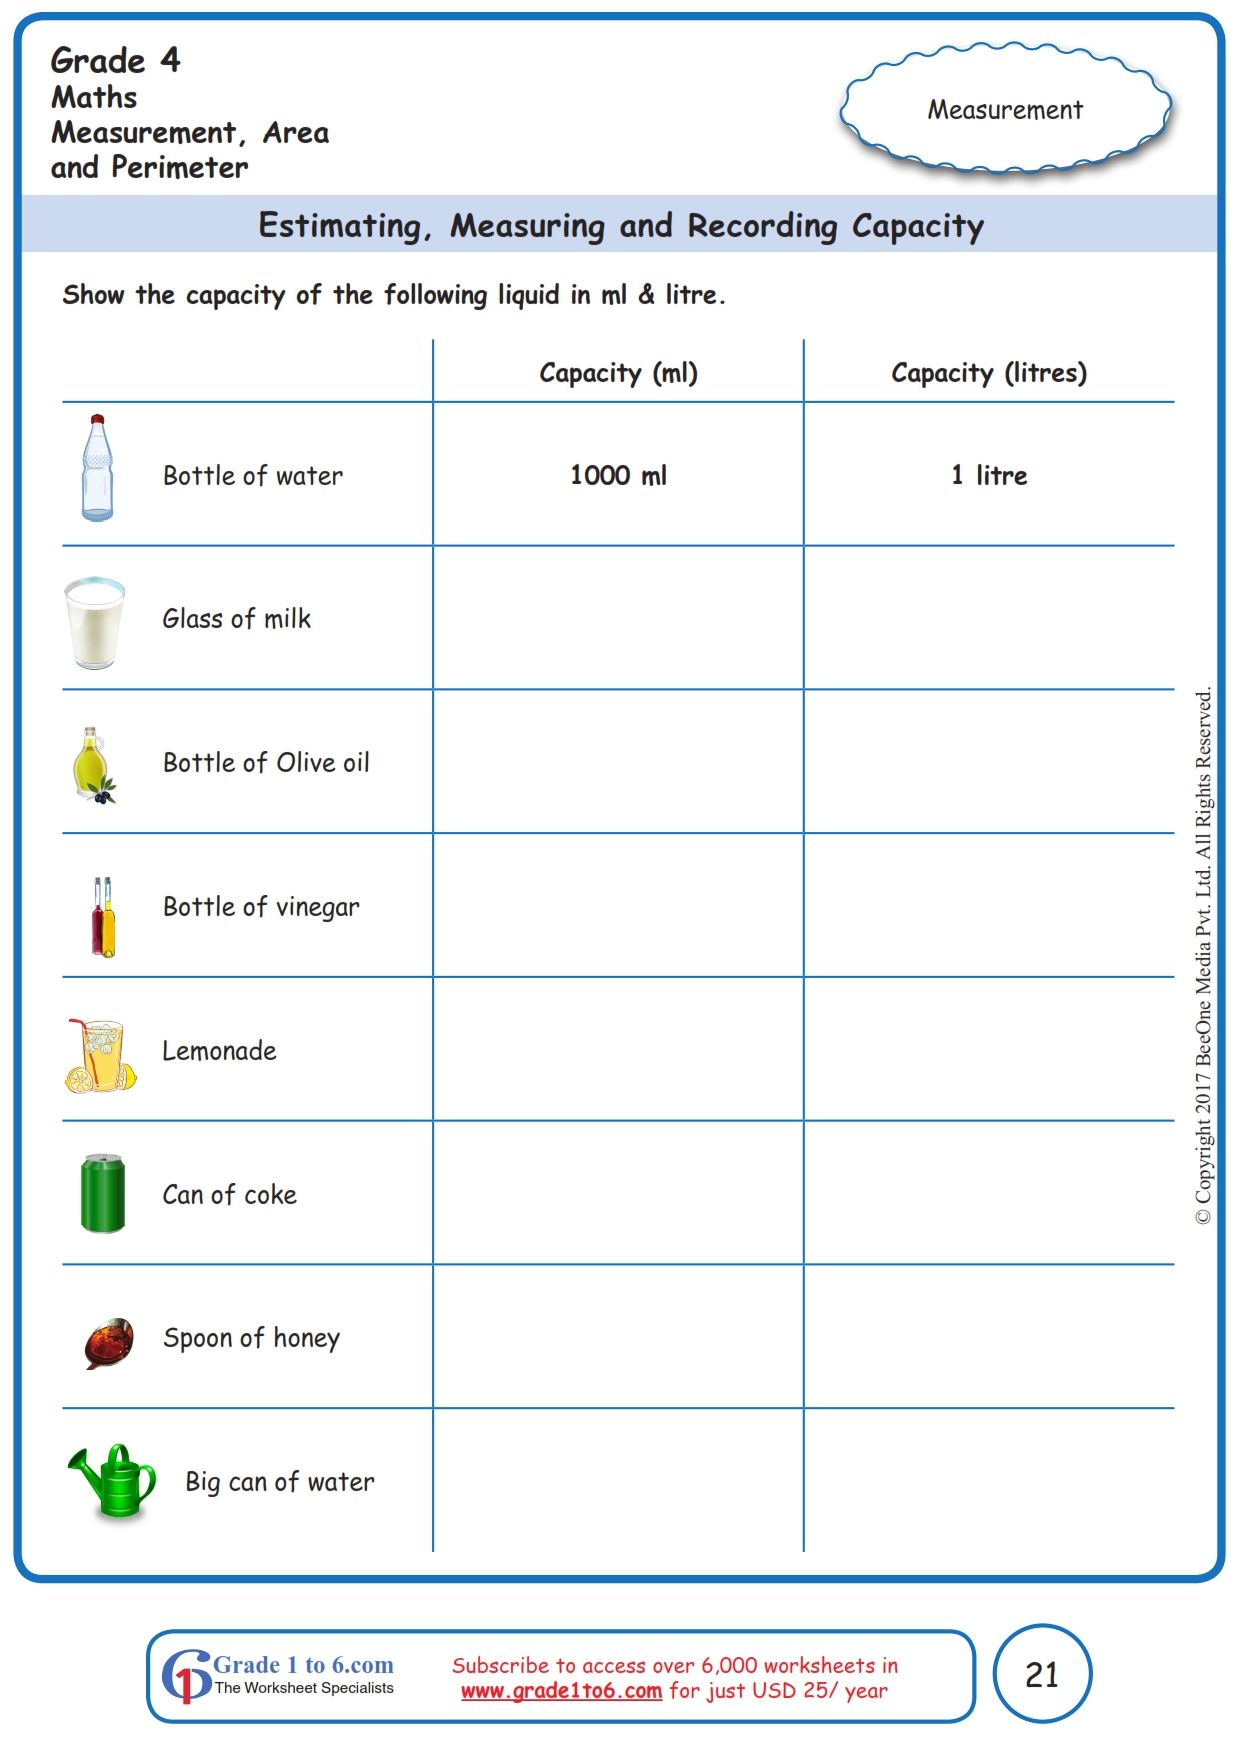 medium resolution of 120 Grade 4 Math Worksheets: PYP/CBSE/ICSE/Common Core ideas   math  worksheets